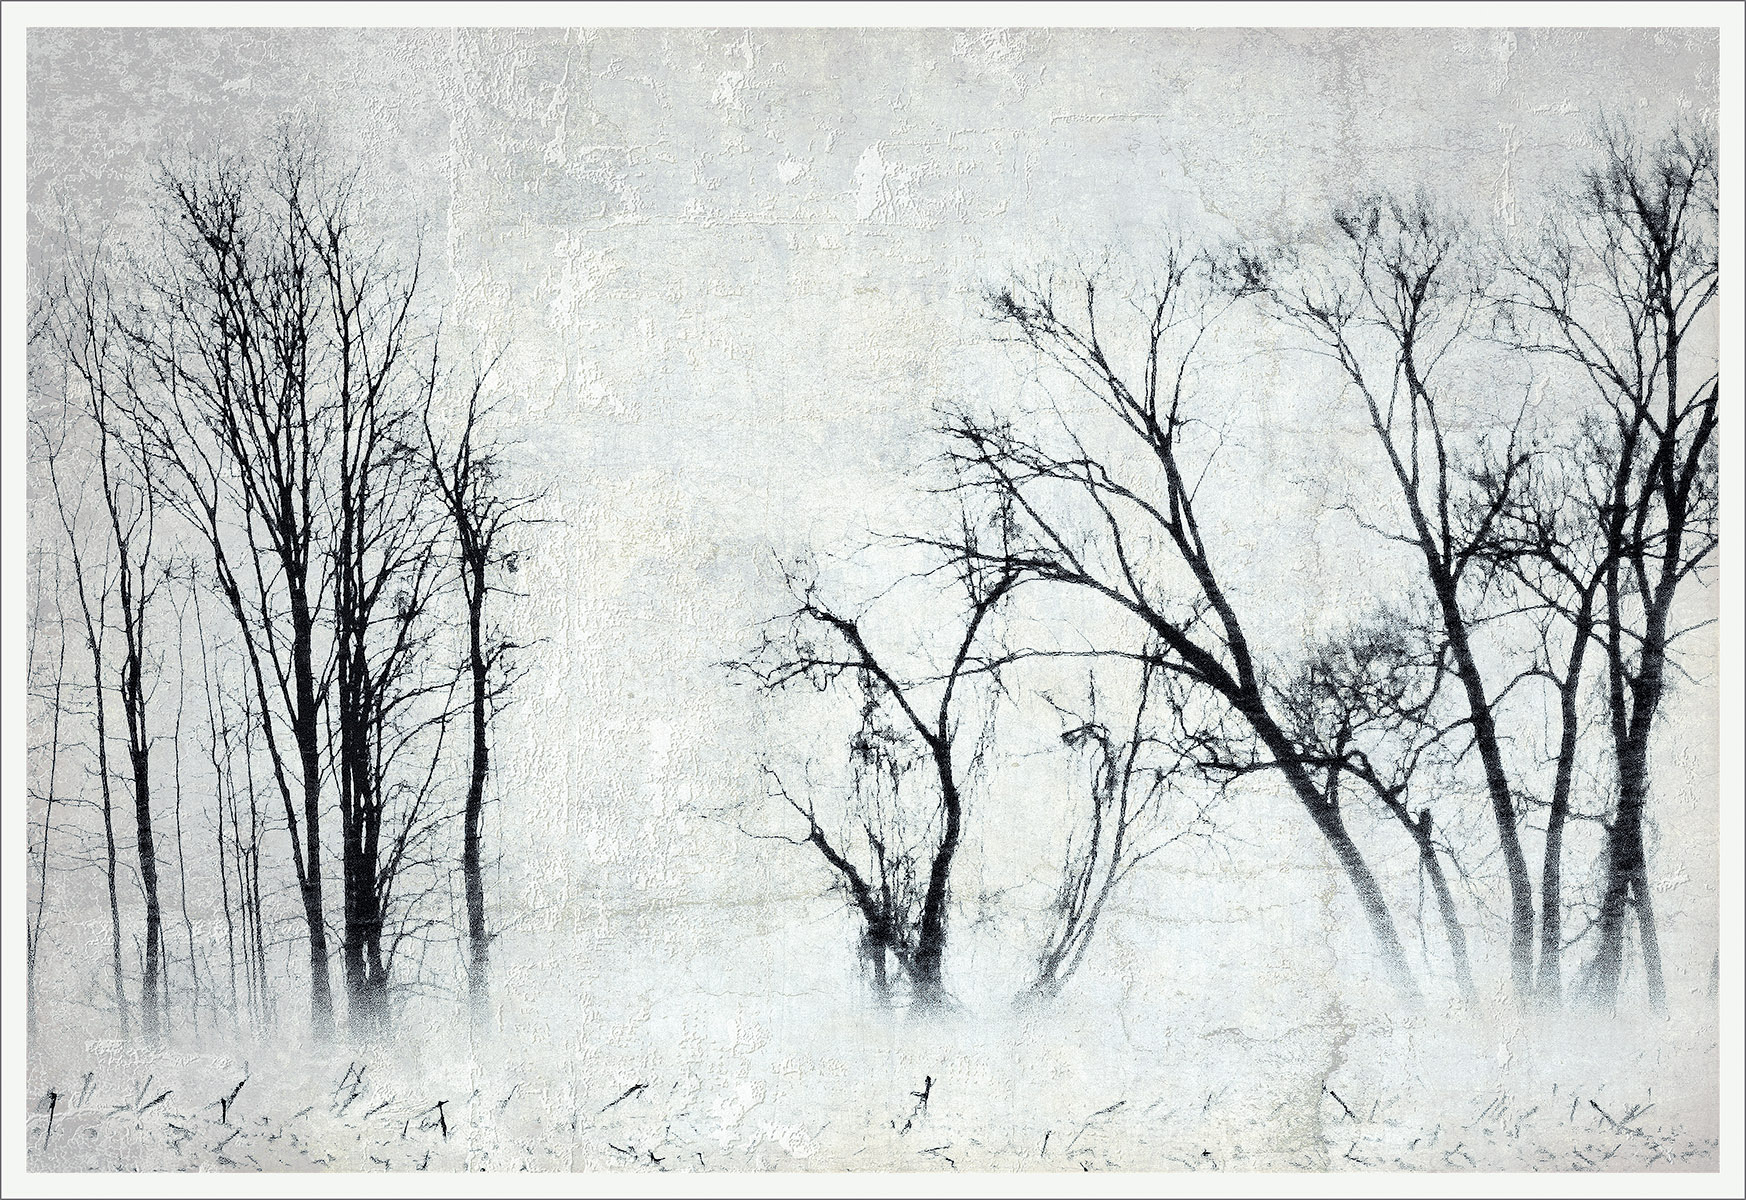 Winter Squall